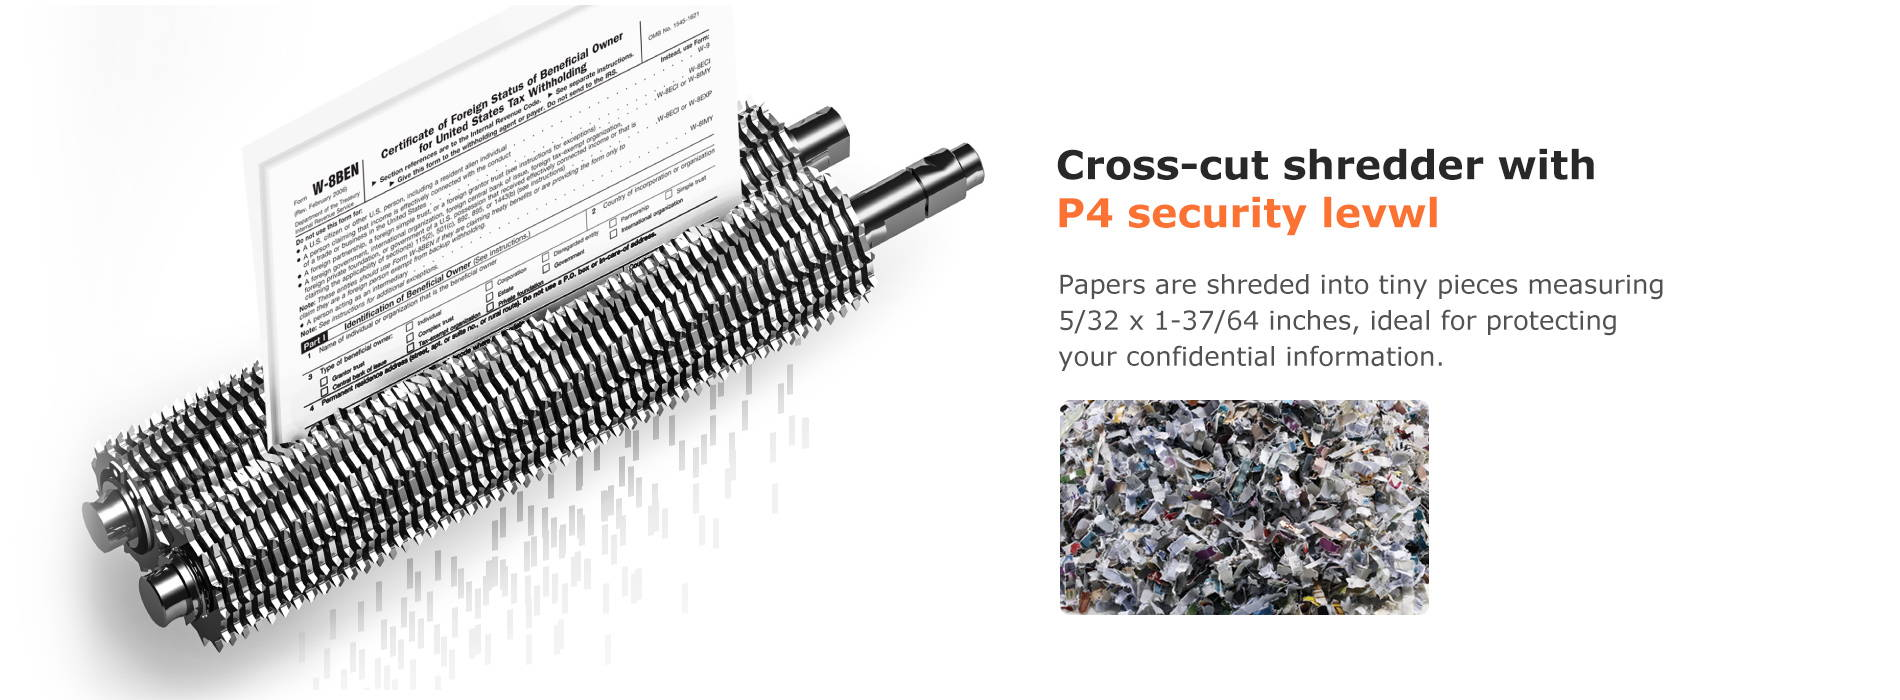 Cross-cut shredder with P4 security level  Papers are shreded into tiny pieces measuring 5/32 x 1-37/64 inches, ideal for protecting your confidential information.